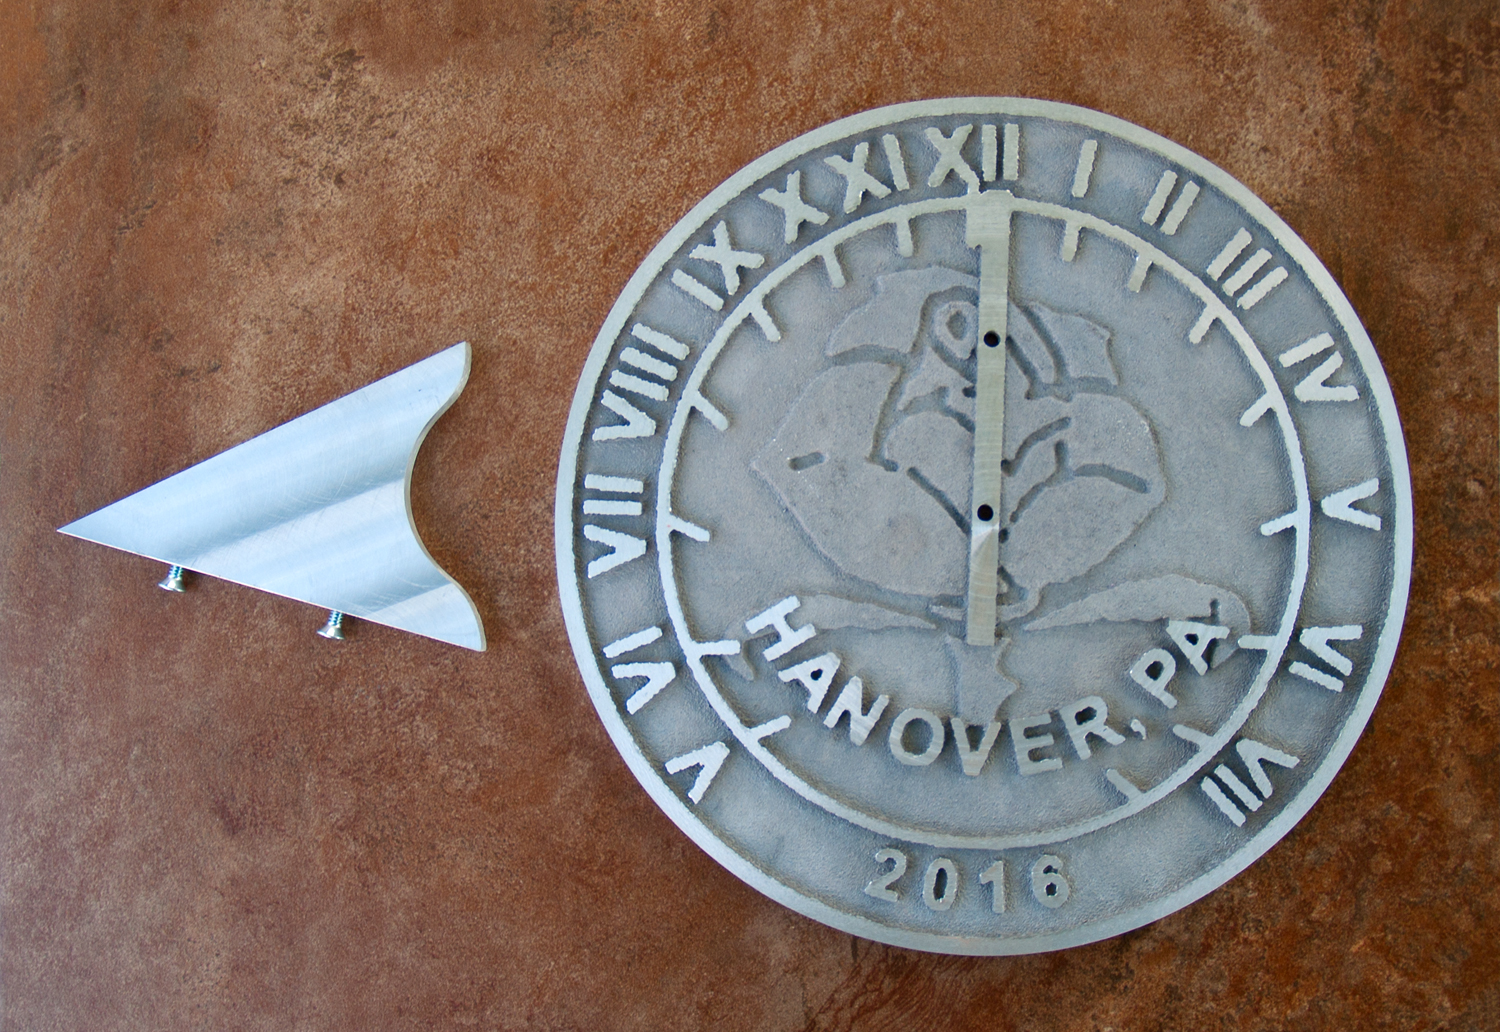 Completed sundial and gnomon.